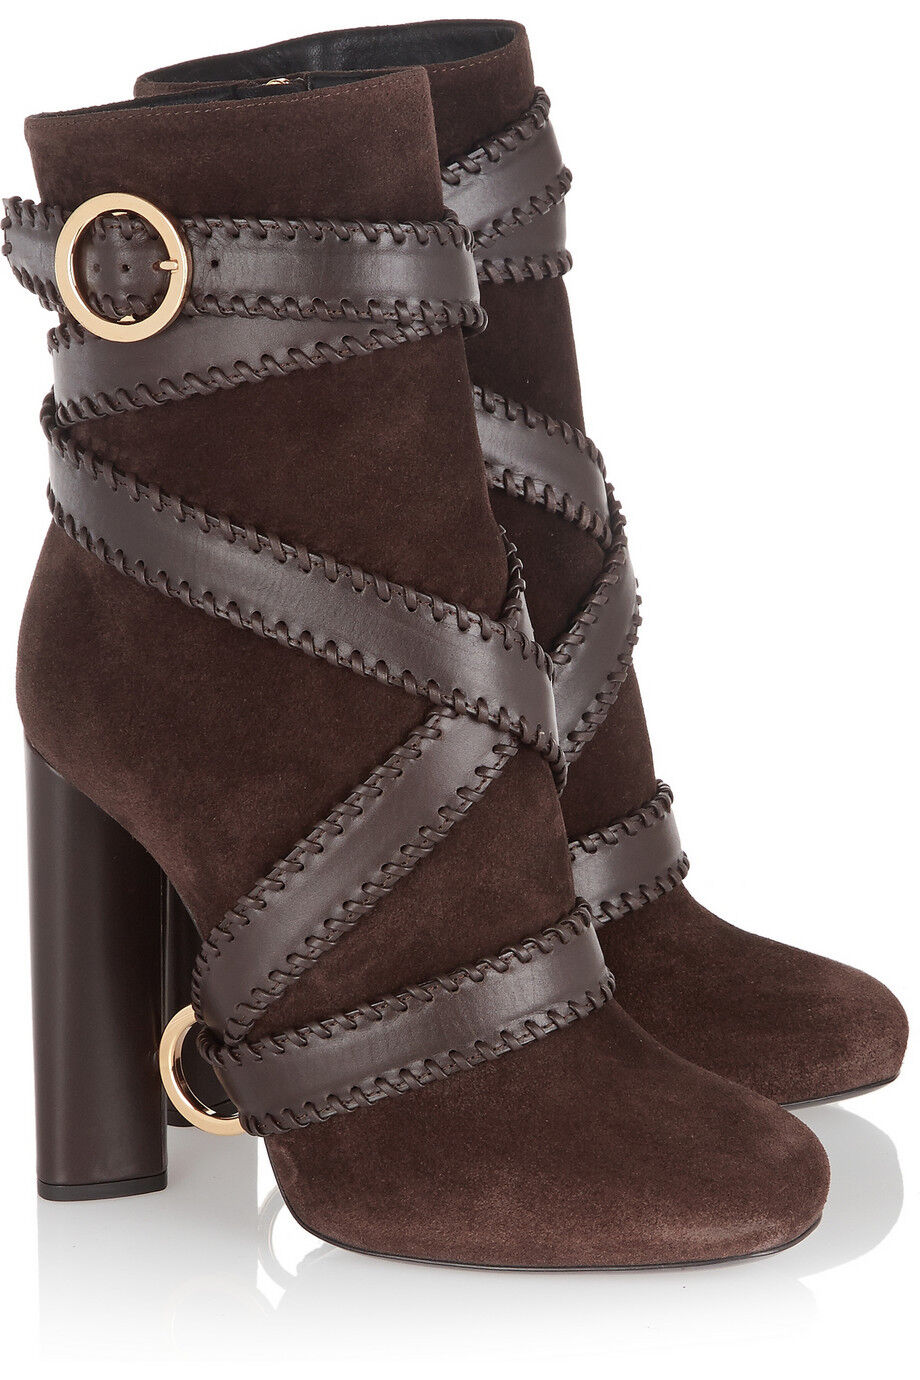 $1.7 Tom Ford Leather & Suede Brown Brown Brown Strappy Ankle Boots Sz 40.5 / 10.5 New + Box 1c3196